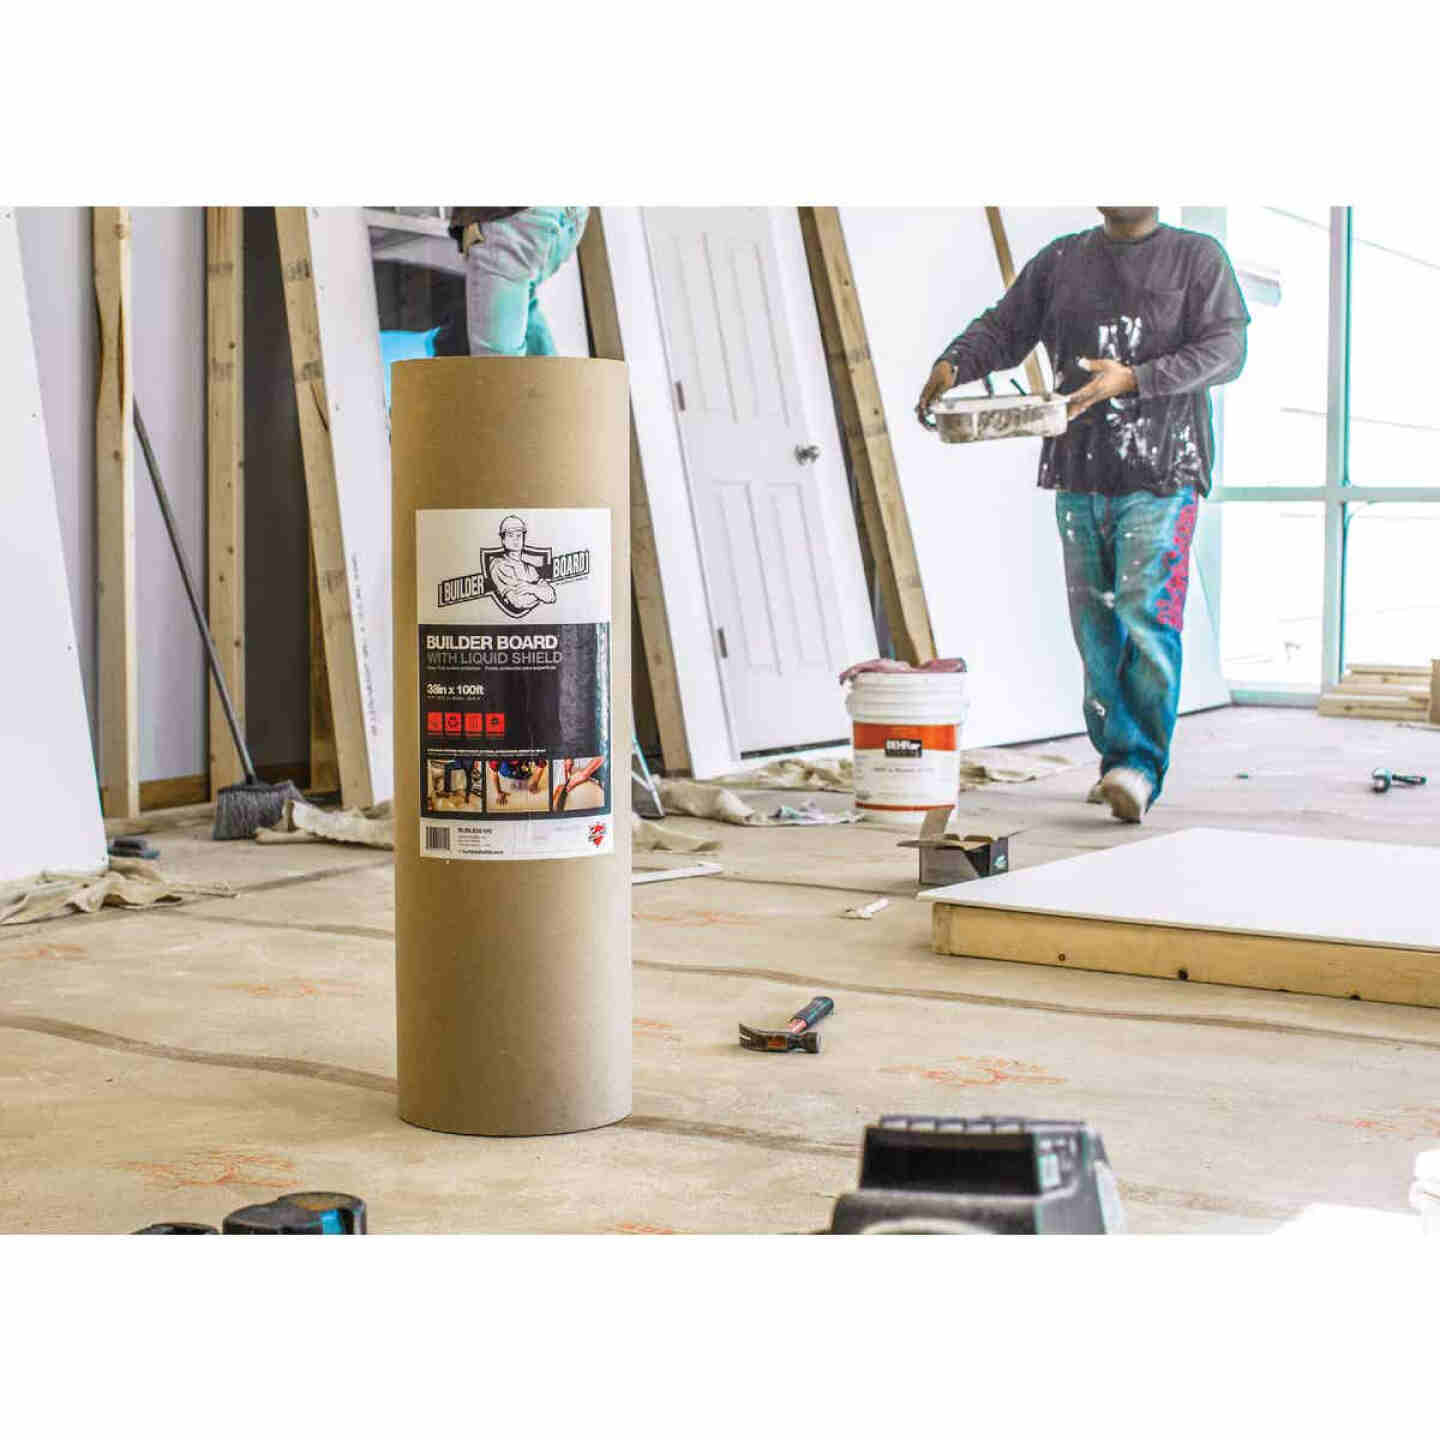 Surface Shields Builder Board 38 In. x 100 Ft. Floor Protector Image 2